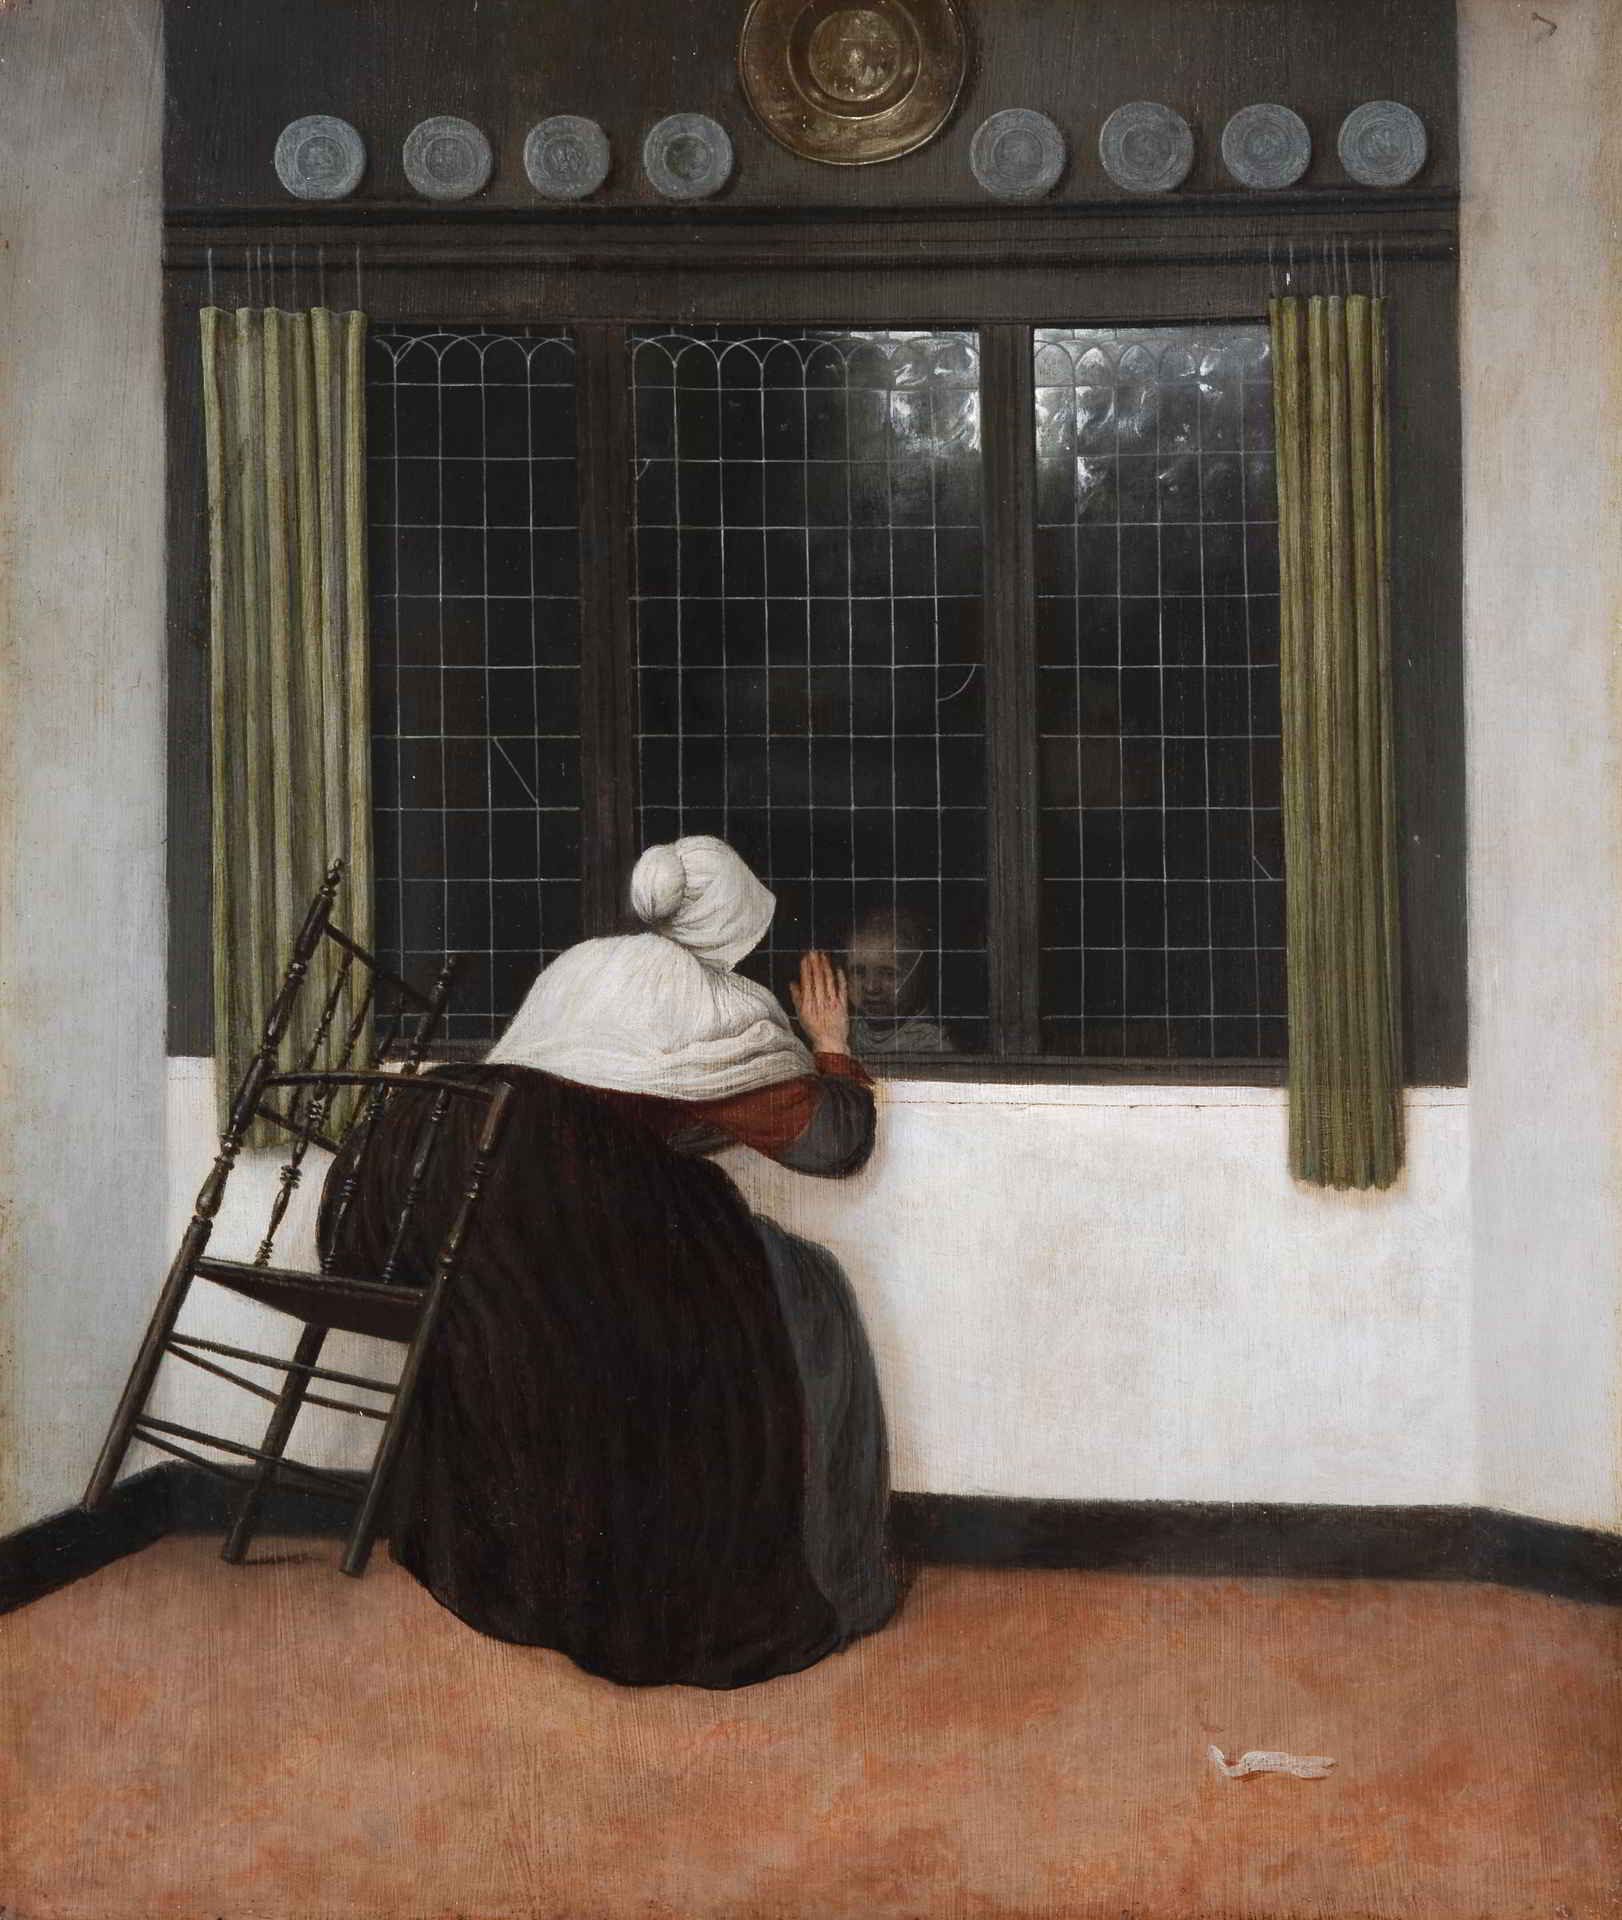 Jacobus Vrel (act. ca. 1650-1670), A Woman at a Window Waving at a Child, Fondation Custodia, Frits Lugt Collection, Paris